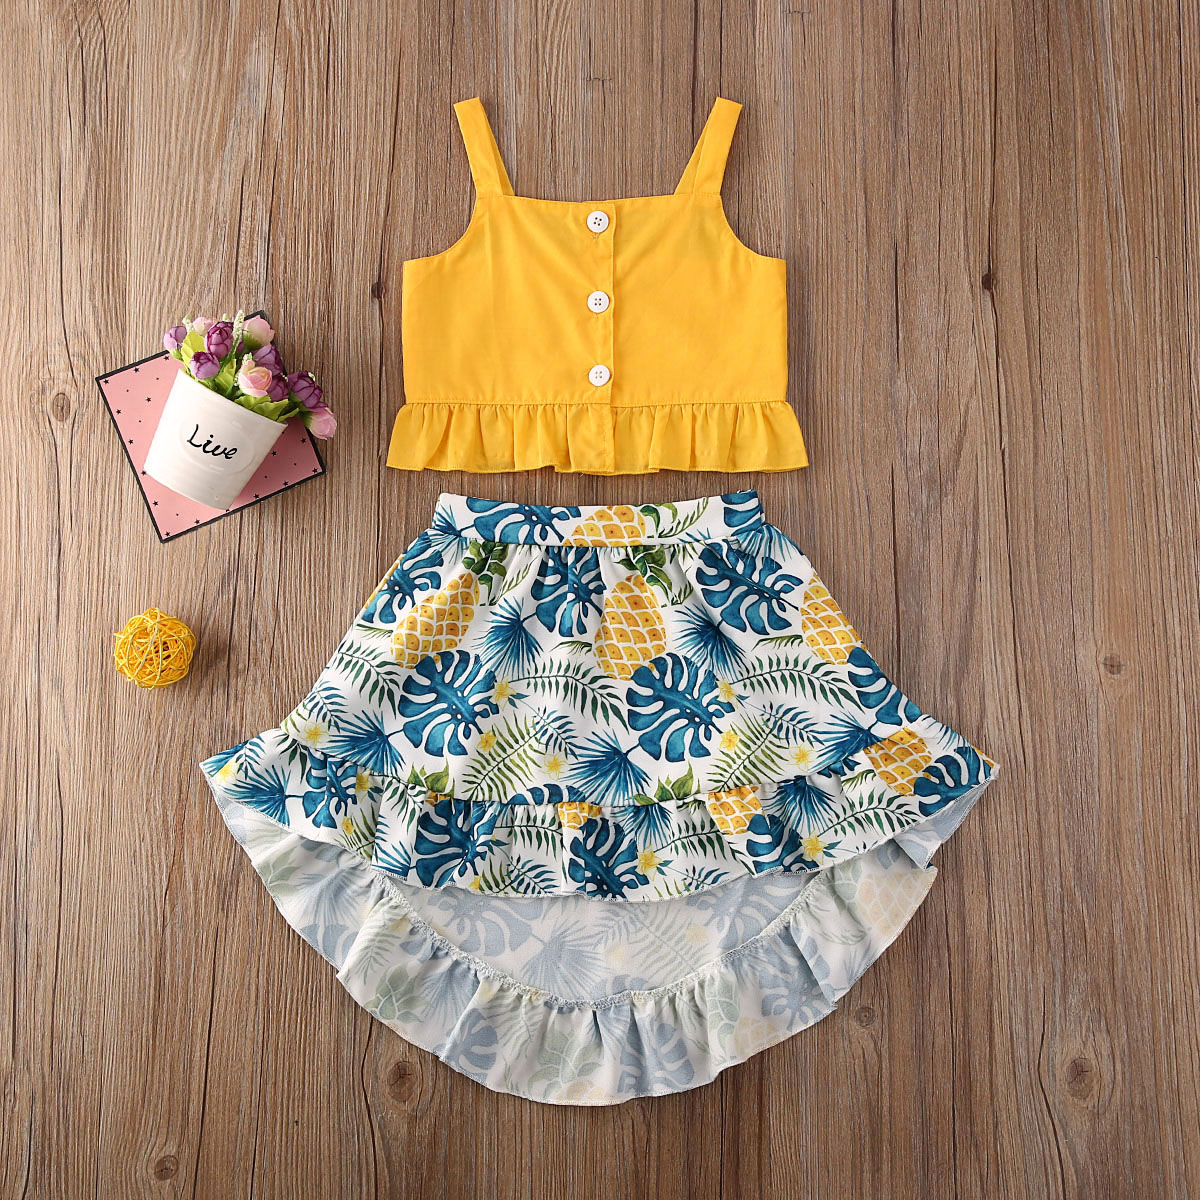 Pudcoco Toddler Baby Girl Clothes Solid Color Sleeveless Strap Crop Tops Beach Print Skirt 2Pcs Outfits Clothes